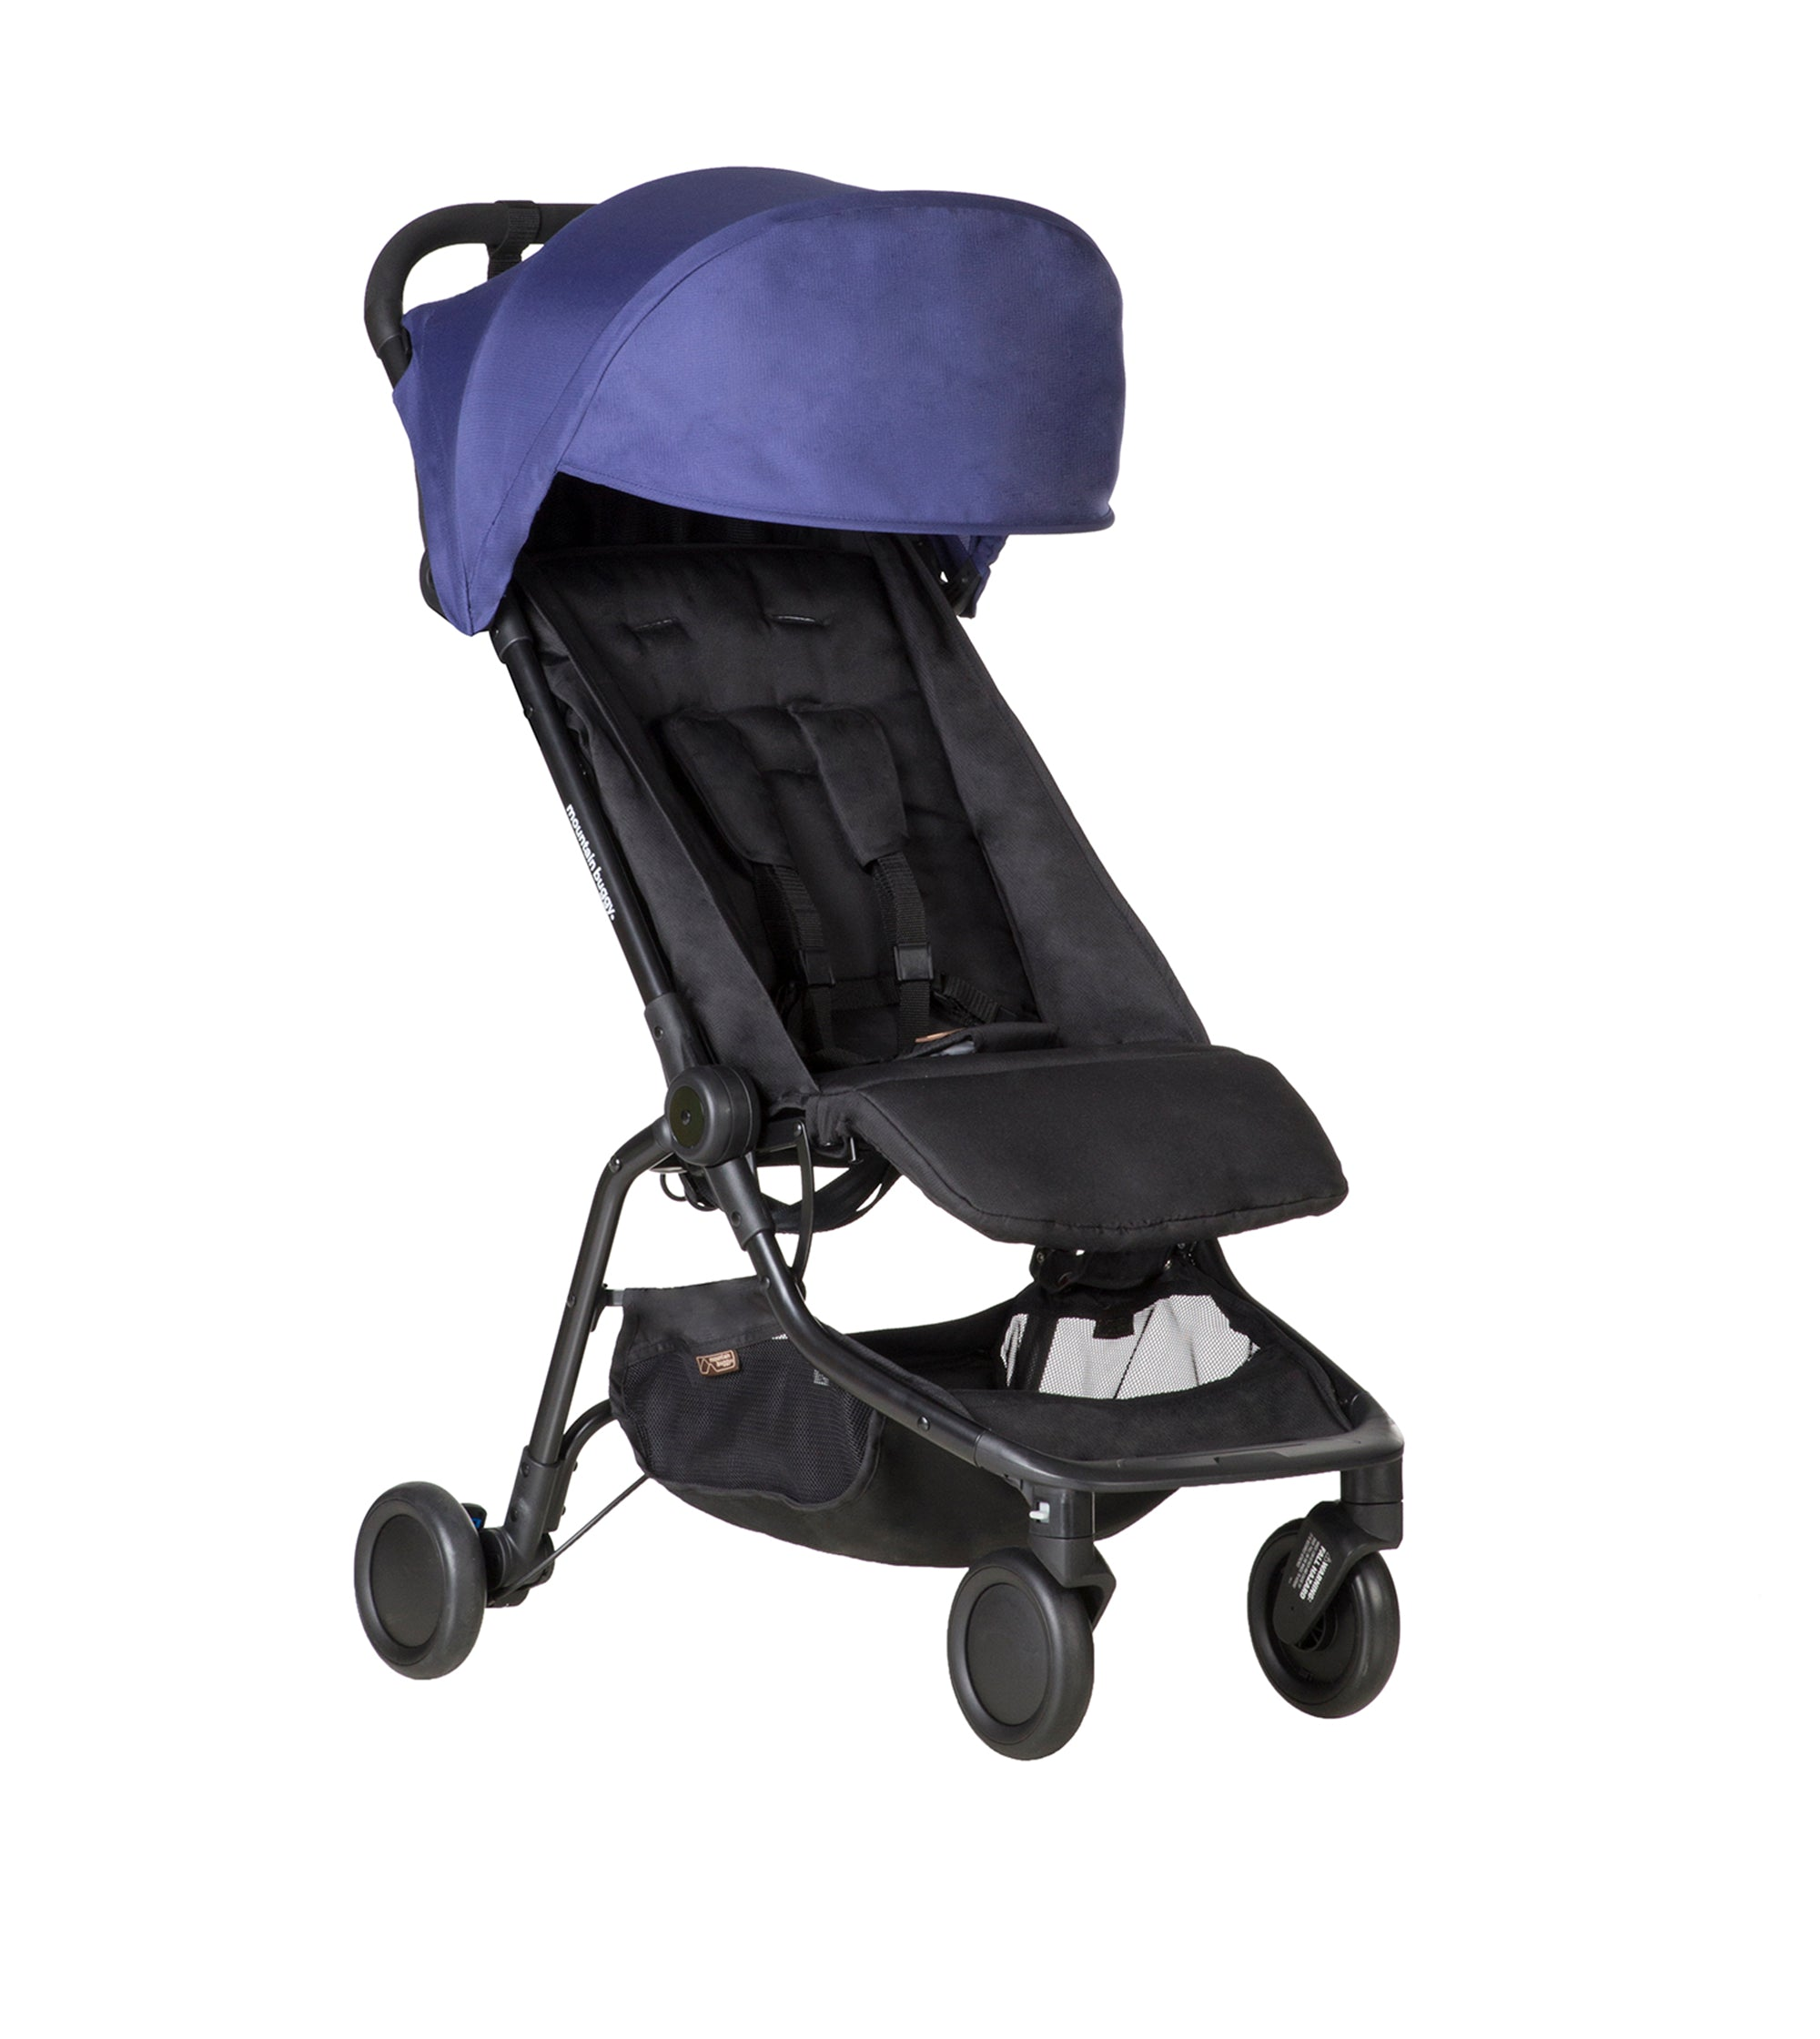 nano travel buggy shown with visor open - colour nautical blue